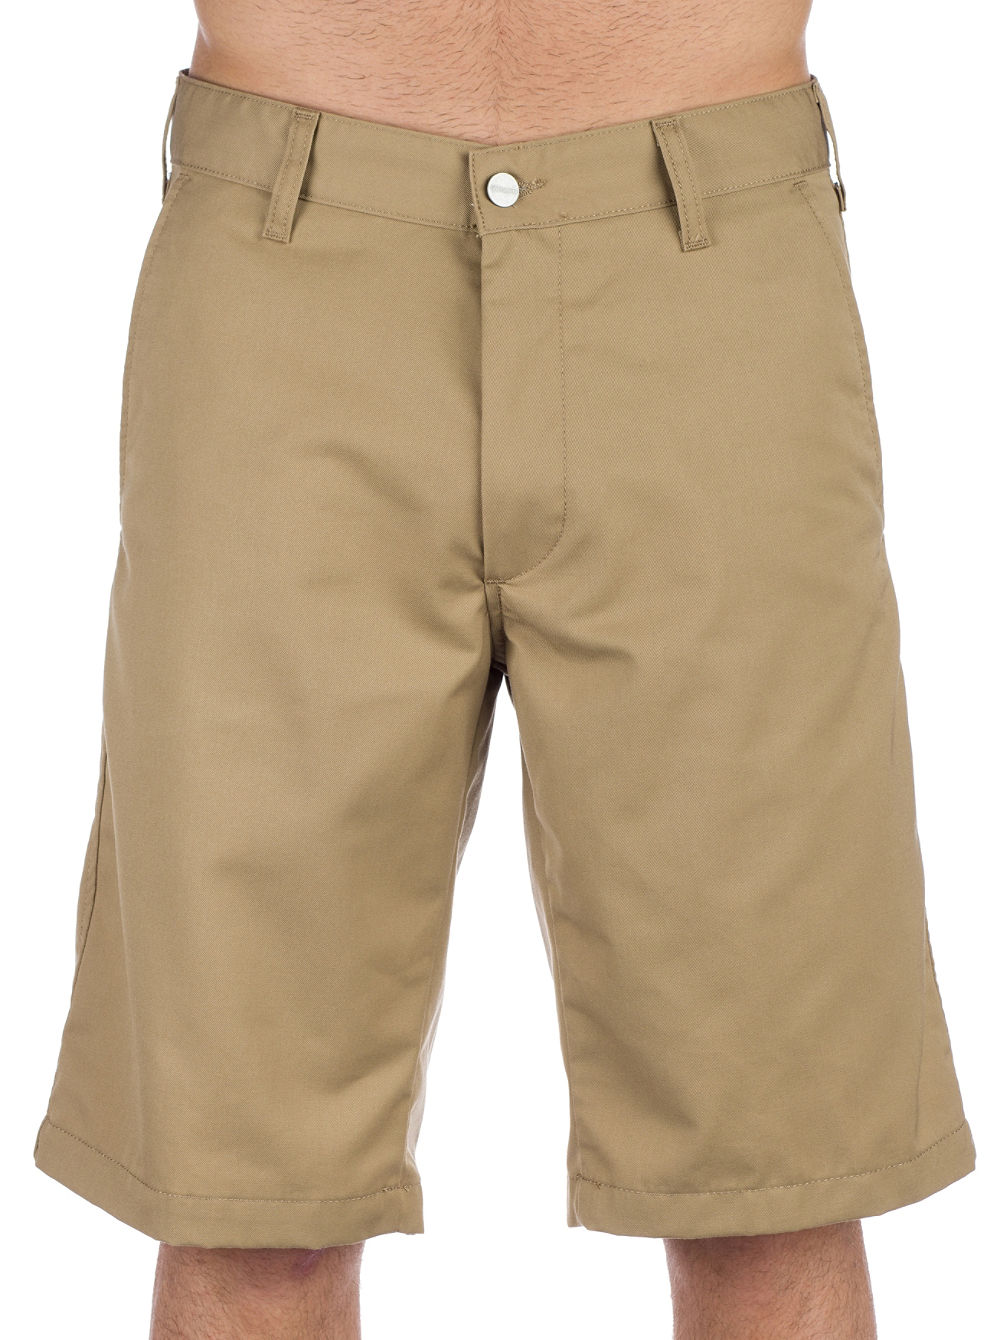 7b4abd5d68 Buy Carhartt WIP Presenter Shorts online at Blue Tomato